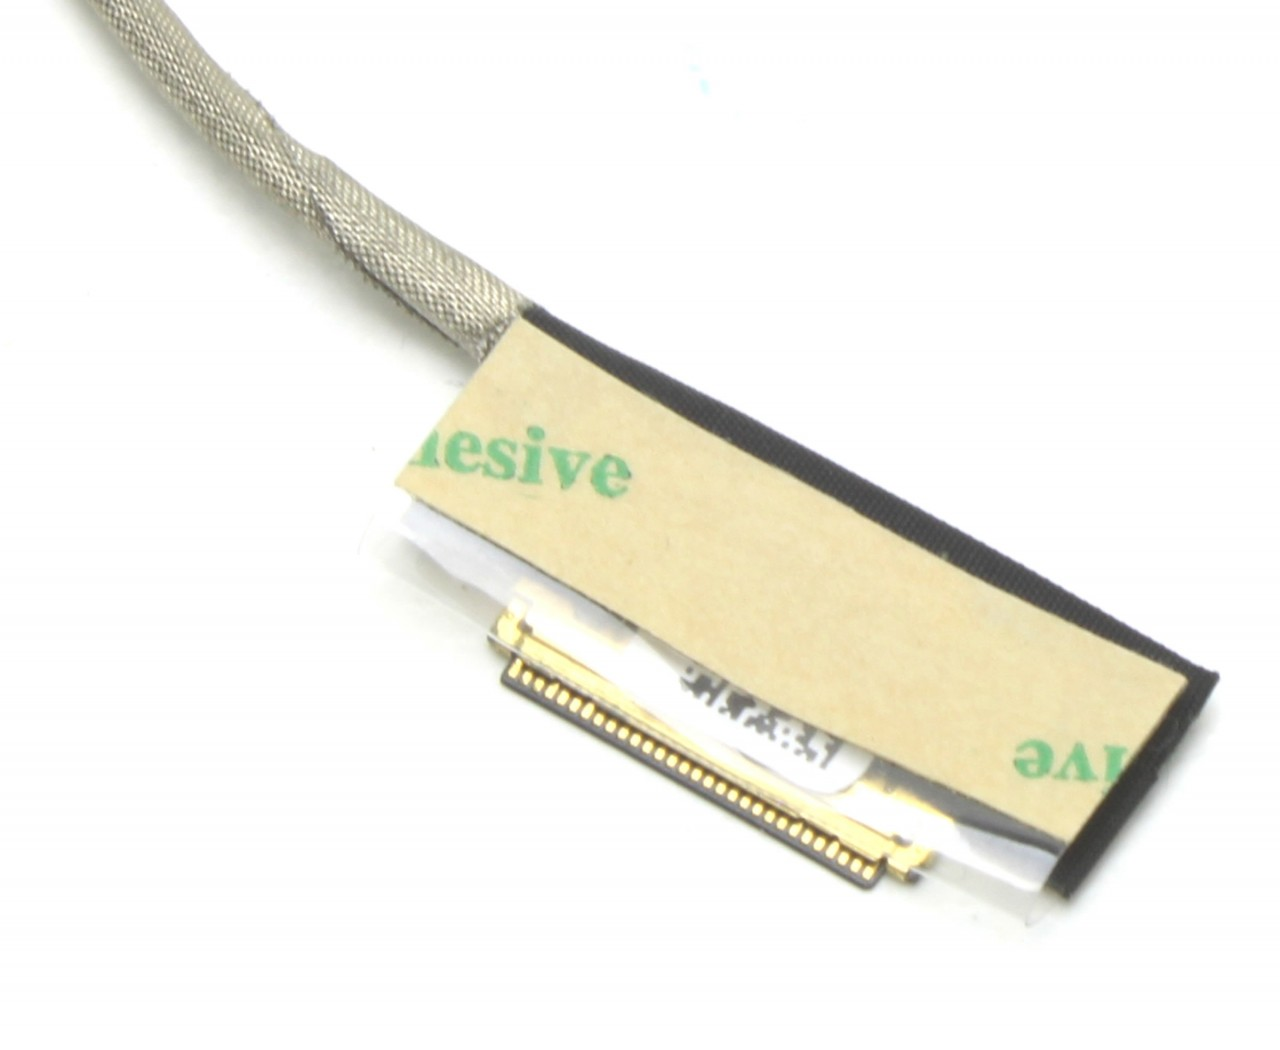 Cablu video LVDS Acer Aspire E5 571G cu touchscreen imagine powerlaptop.ro 2021